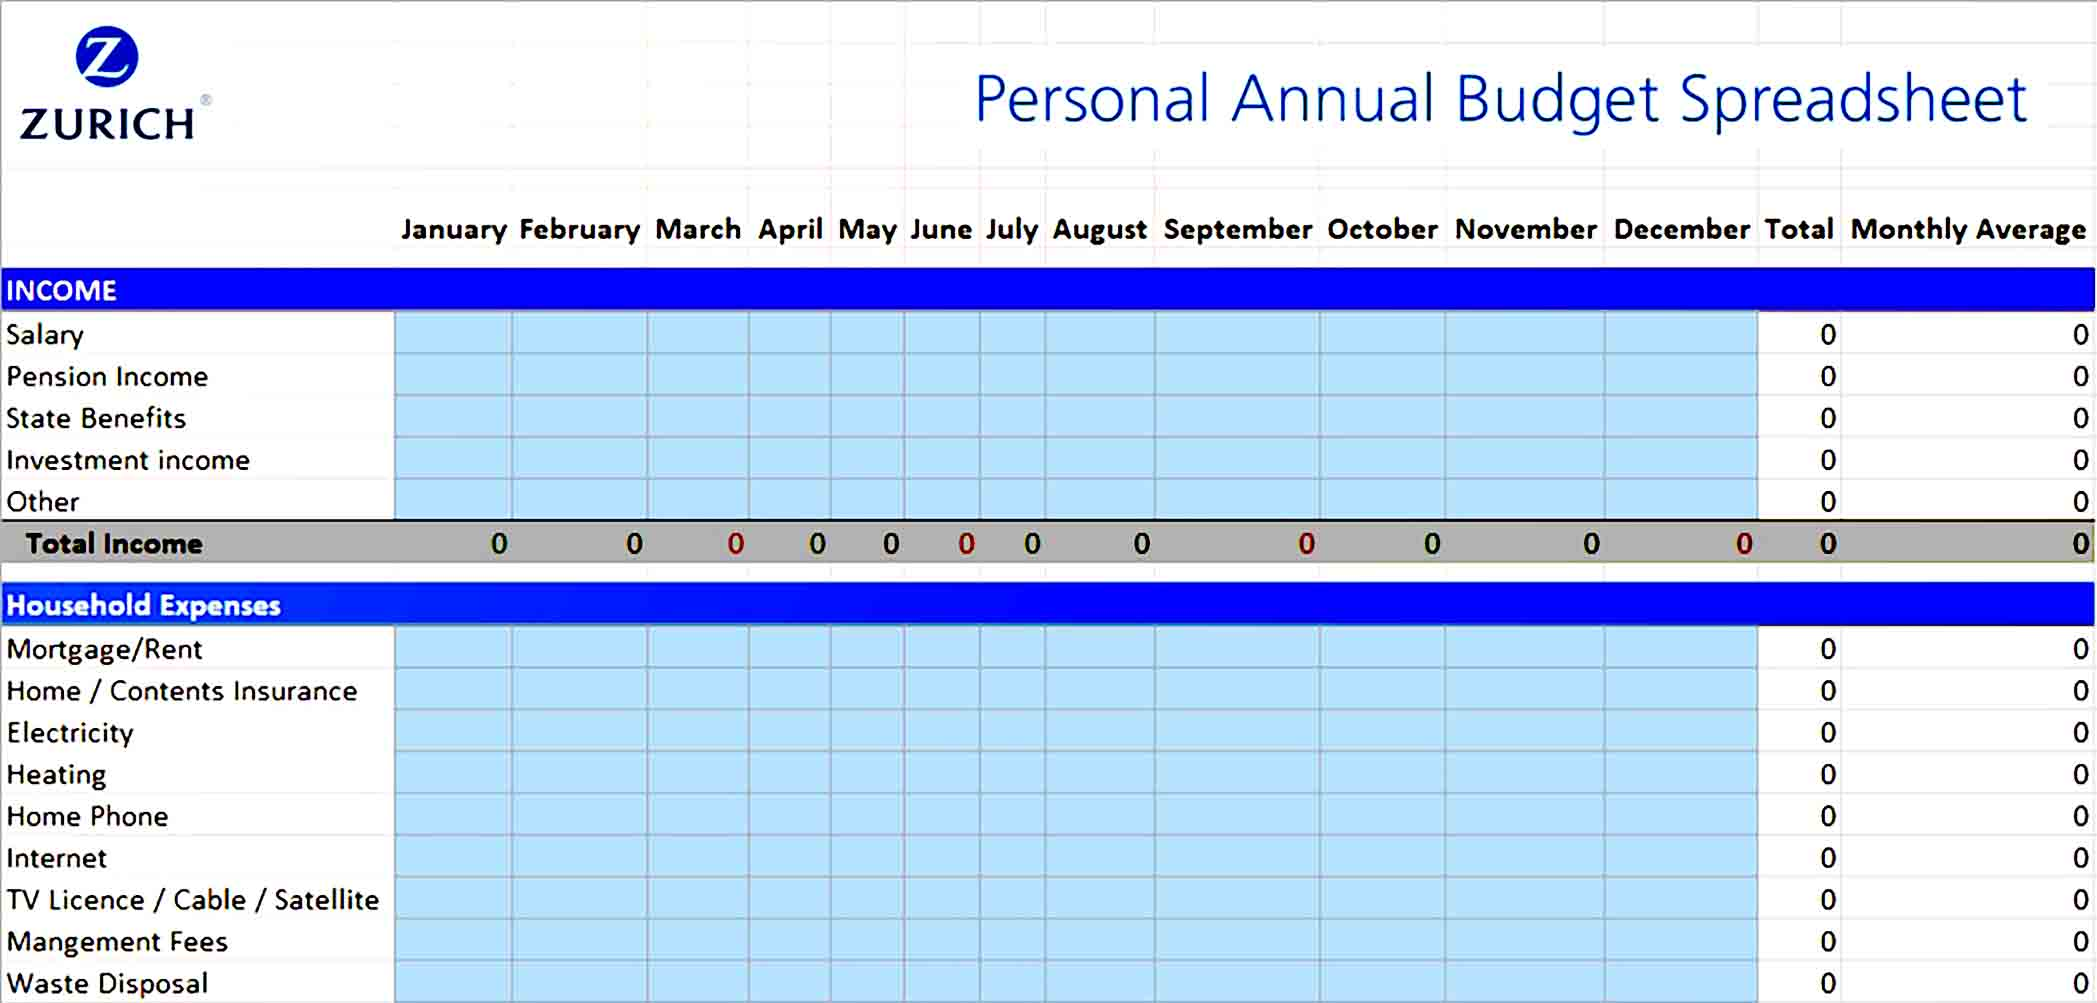 Personal Annual Budget Spreadsheet